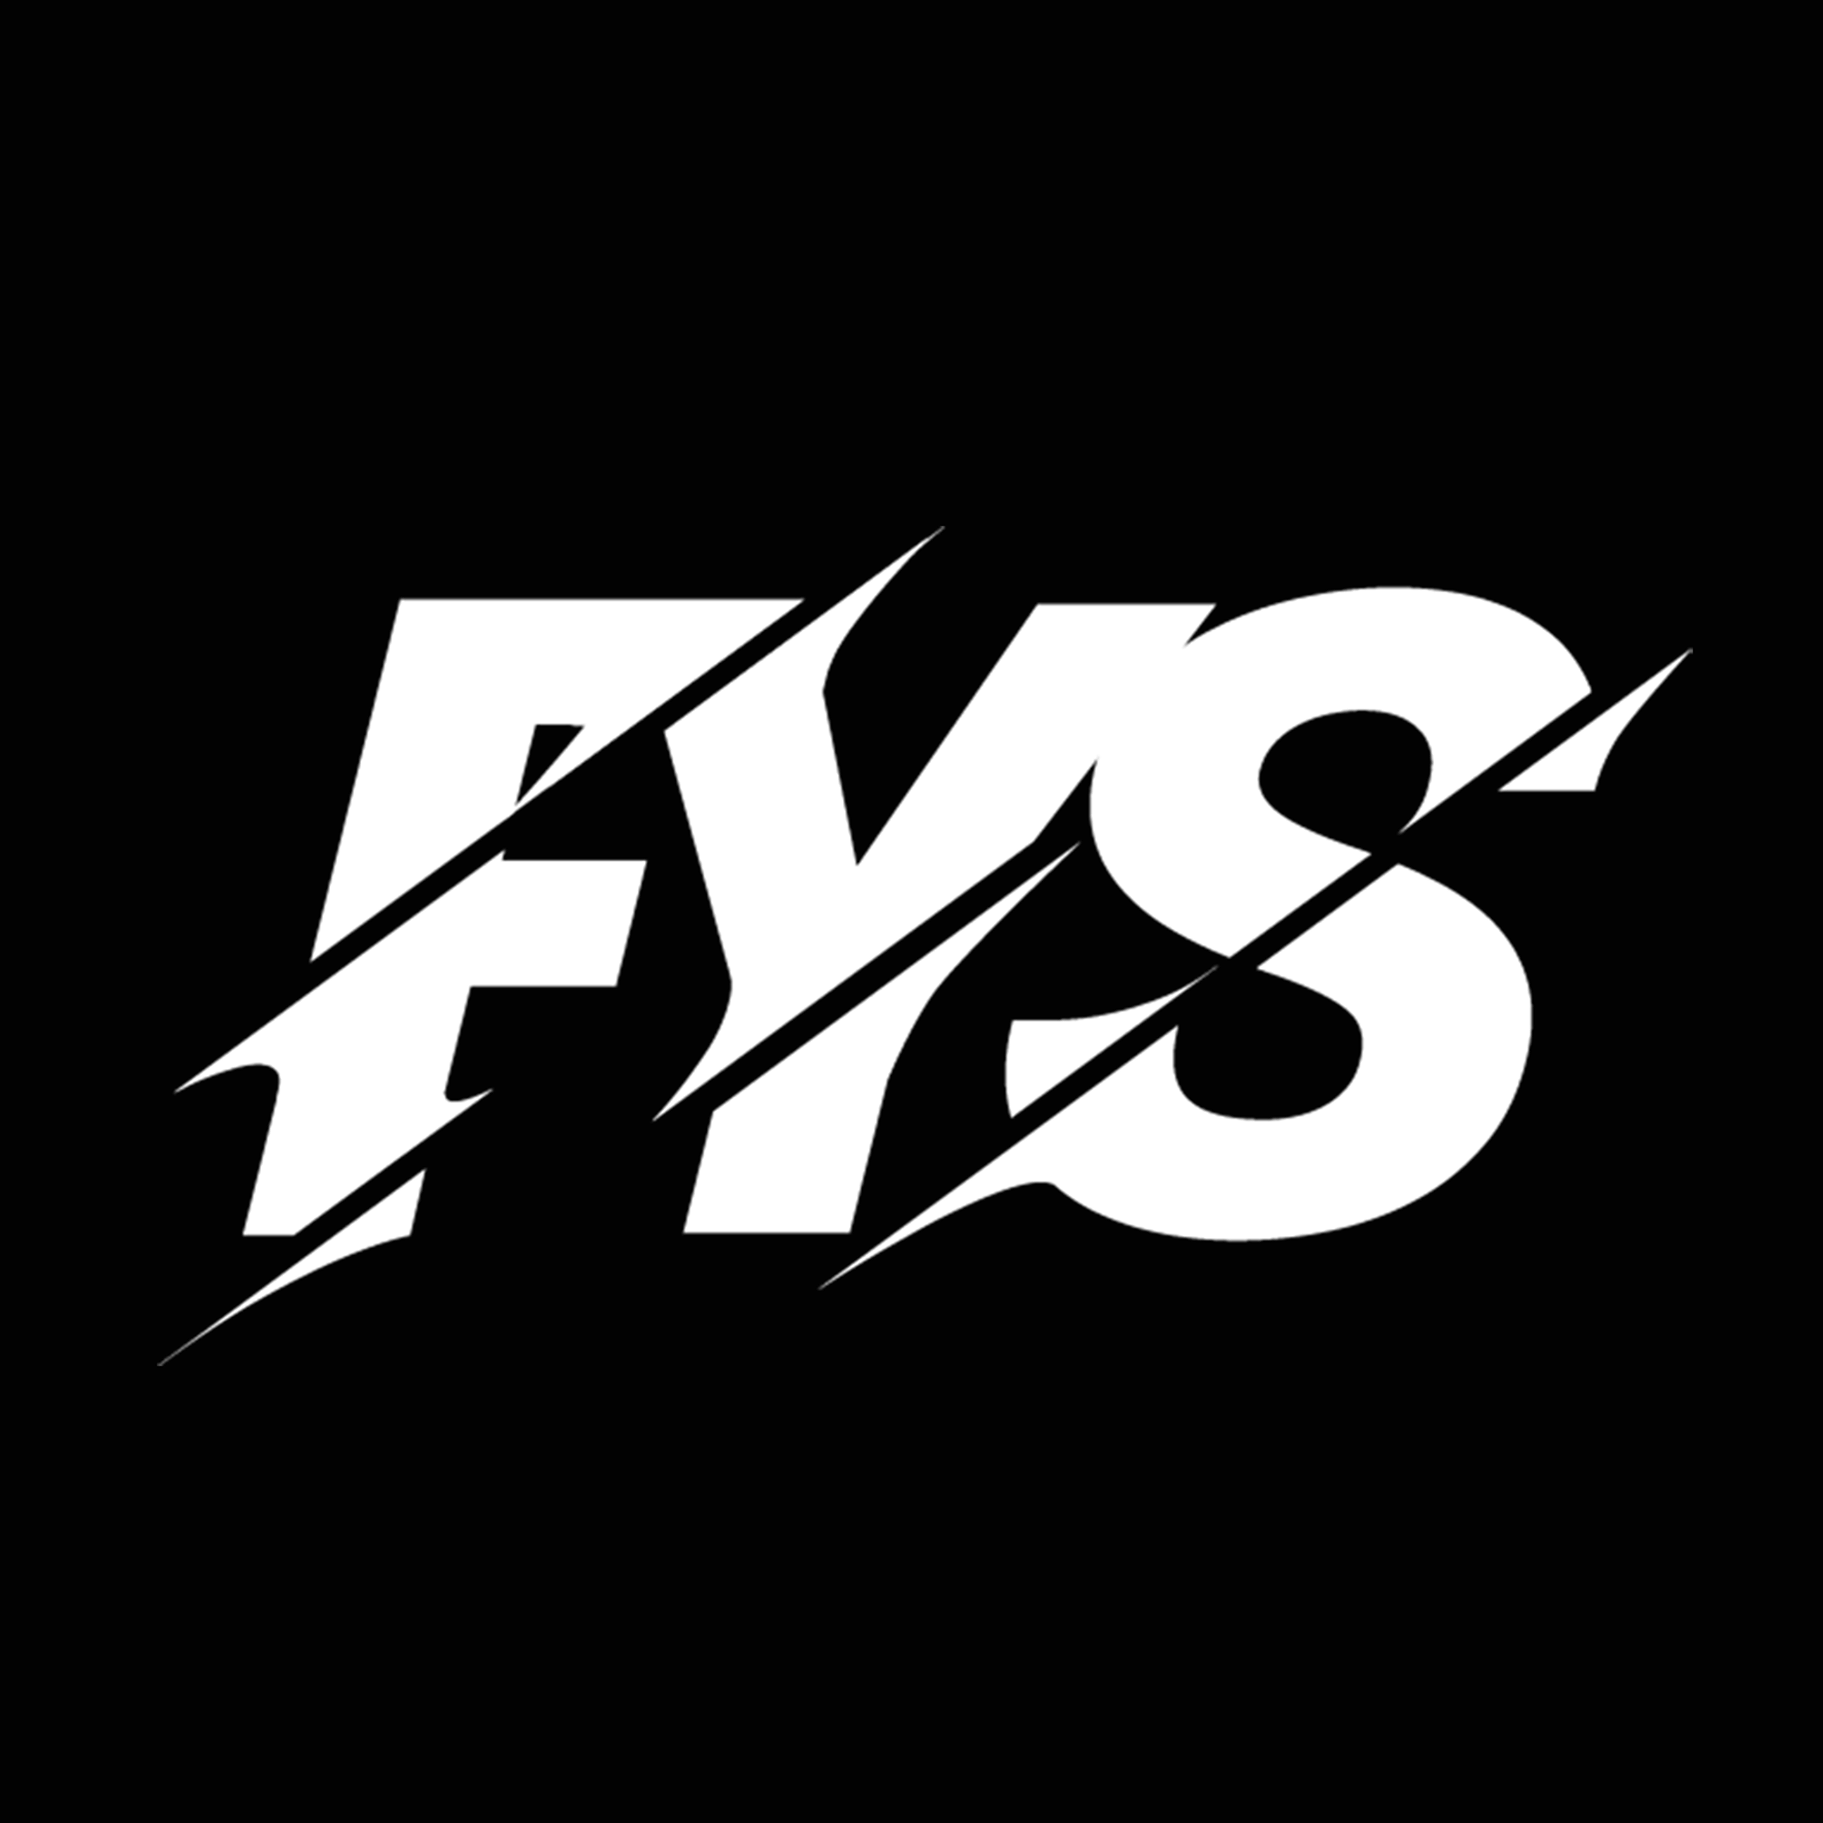 FYS — we are back